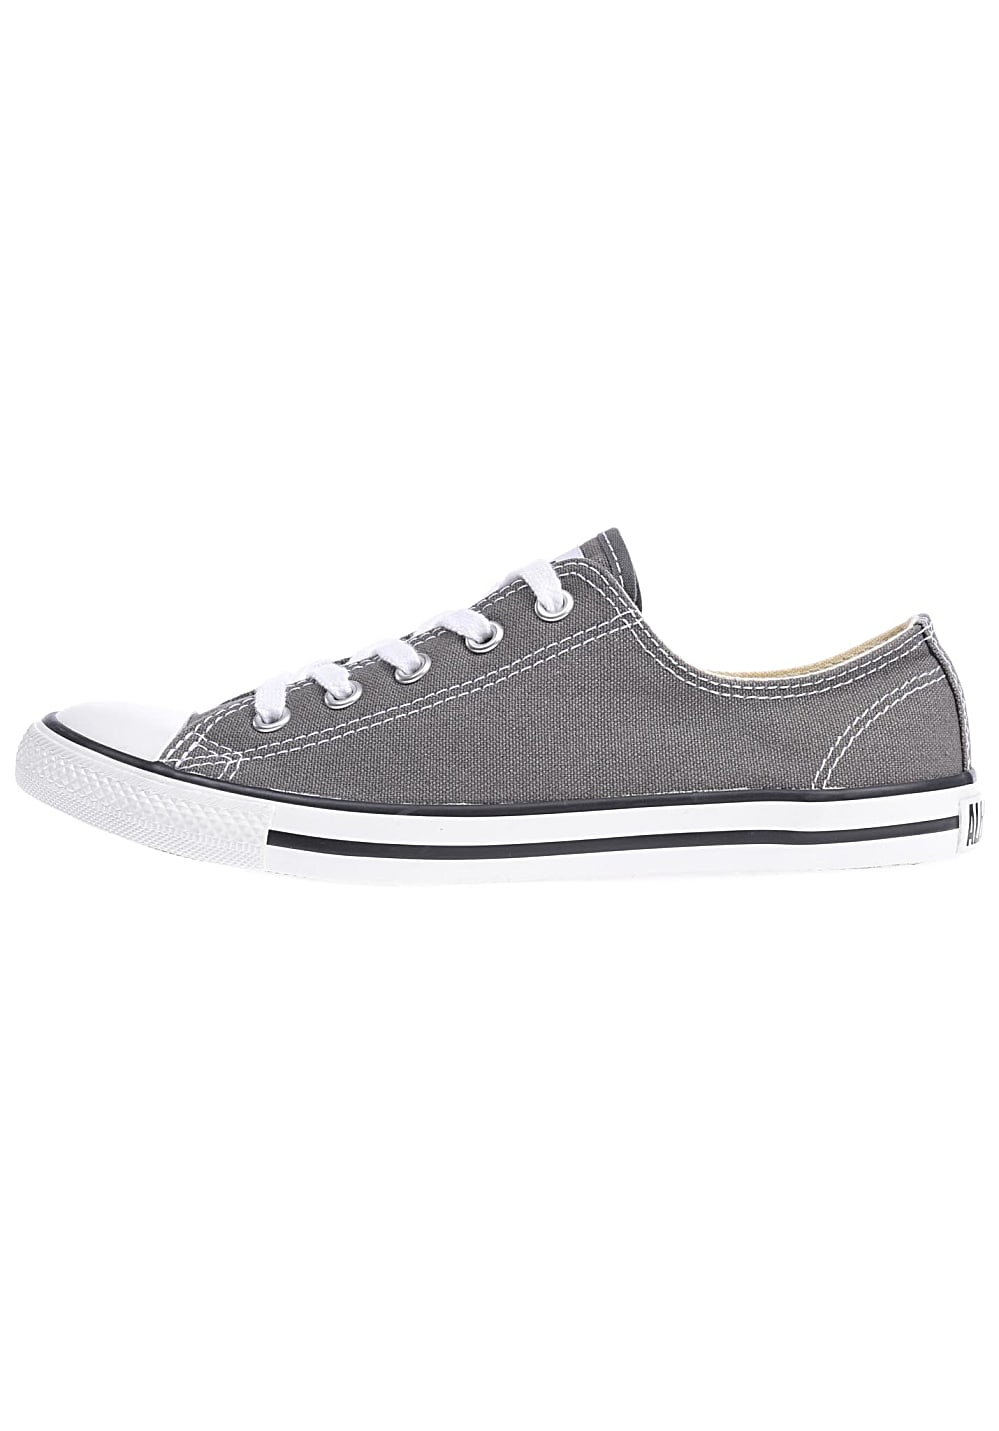 Converse Chuck Taylor All Star Dainty Ox Sneakers voor